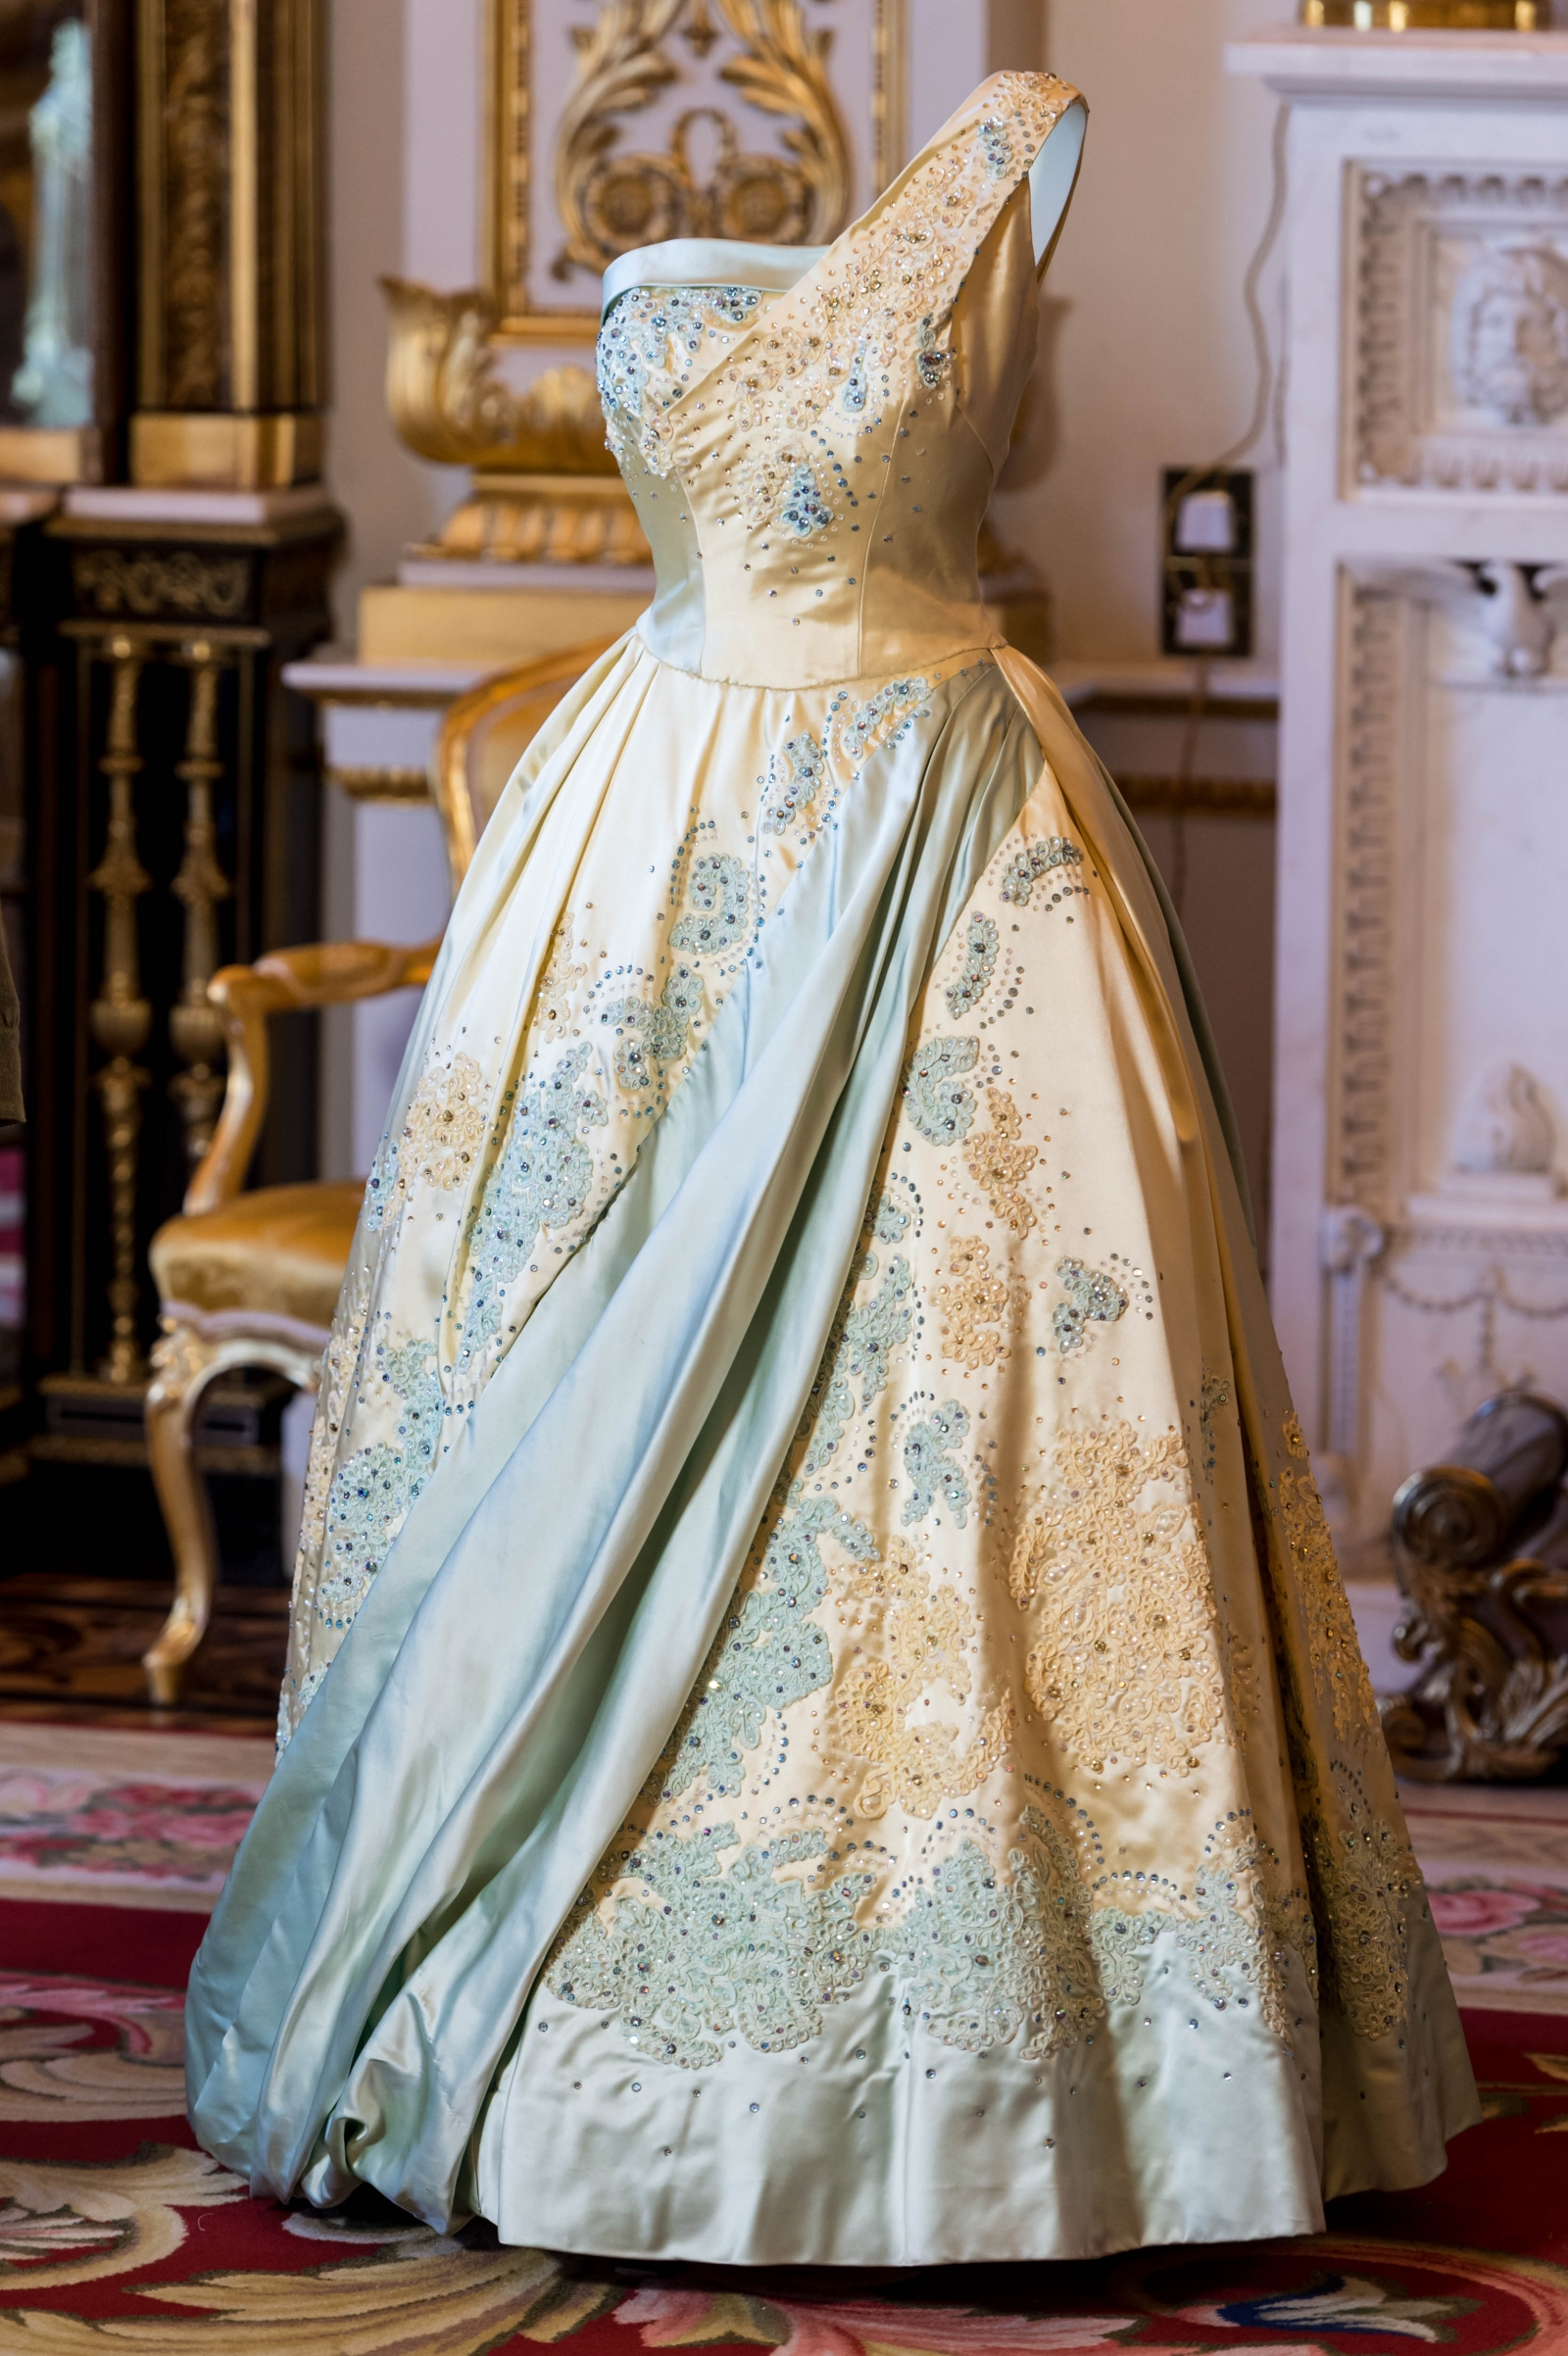 'Fashioning A Reign: 90 years Of Style From The Queen's Wardrobe'